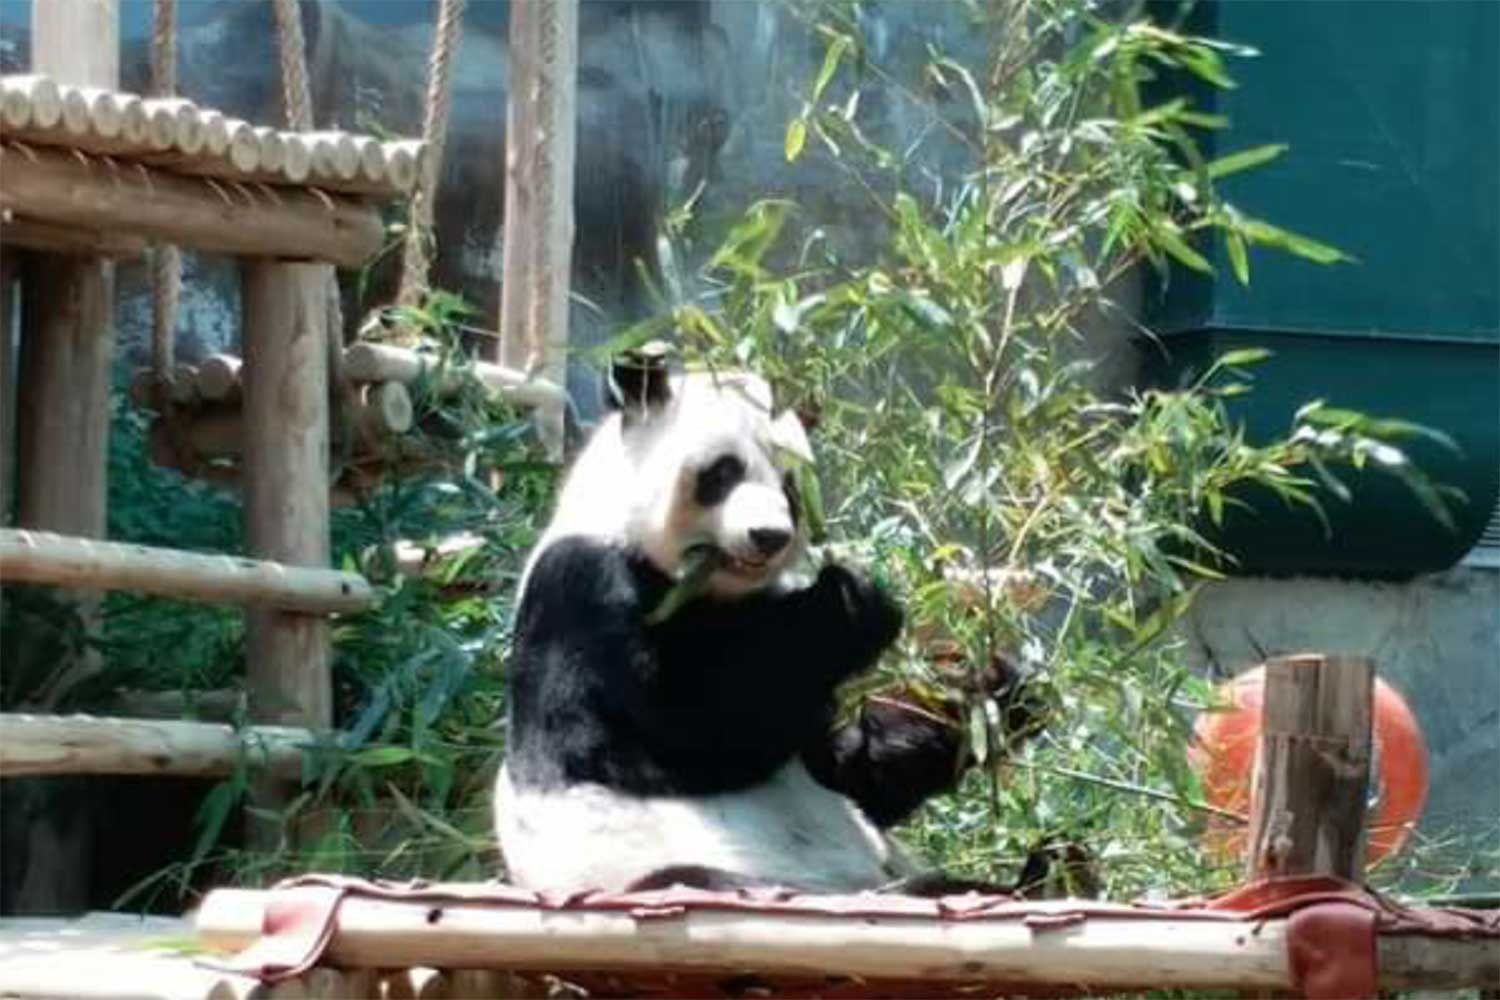 Female giant panda Lin Hui eats fruit and bamboo leaves at Chiang Mai zoo as usual on Tuesday, the day after her mate Xuang Xuang died. (Photo by Panumet Tanraksa)